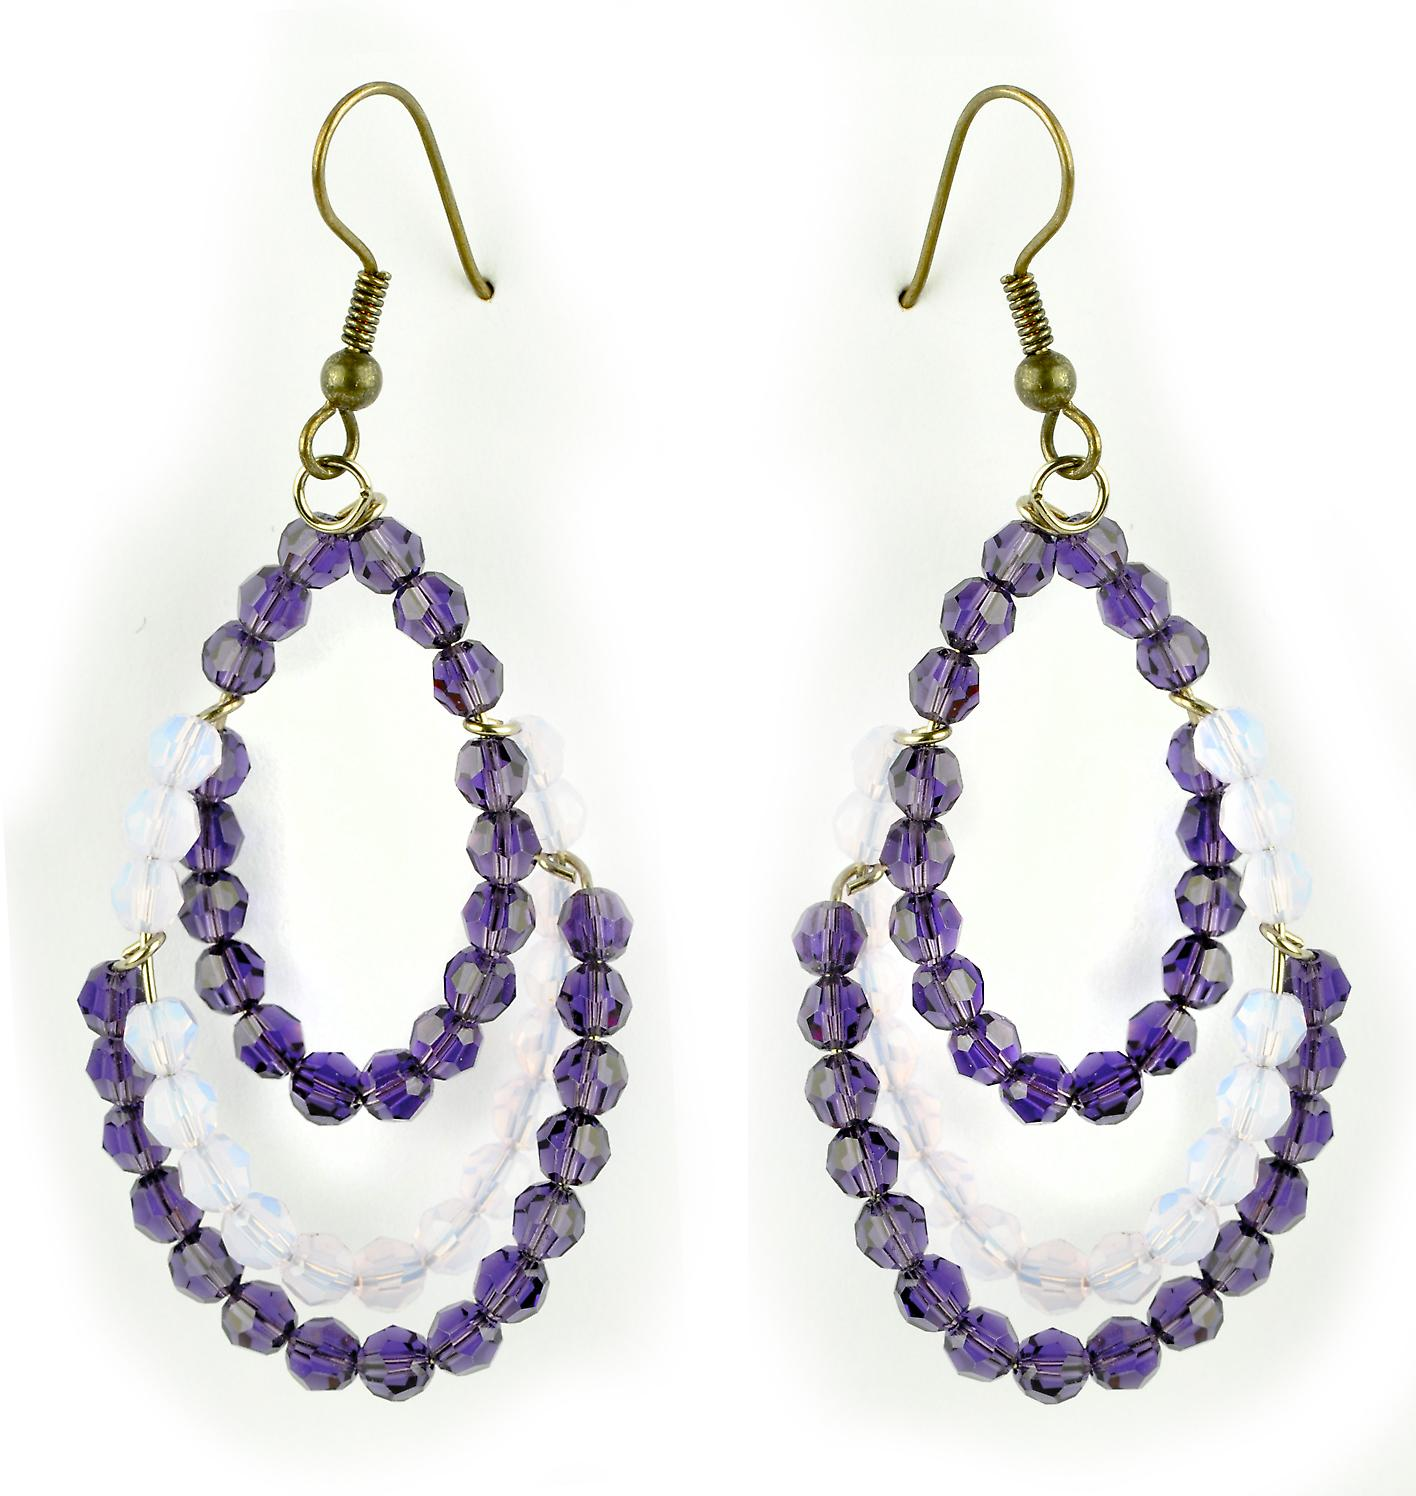 Waooh - Fashion Jewellery - WJ0719 - On Earrings with Swarovski Lila & Purple - Frame Color Silver